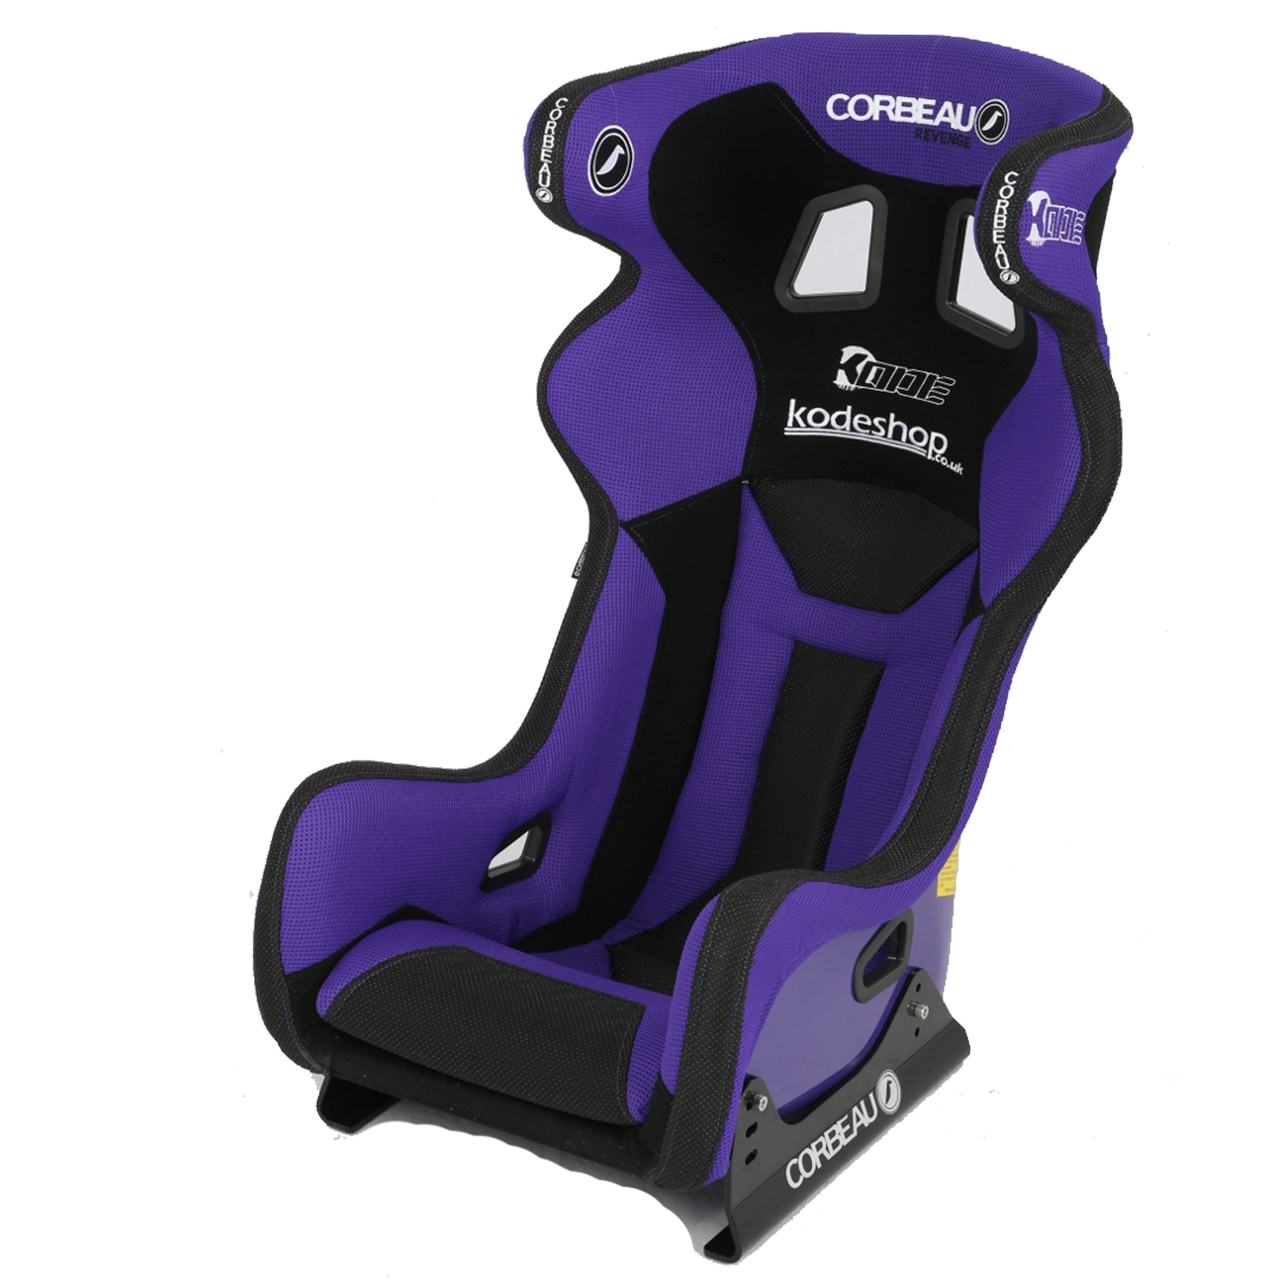 Corbeau Revenge X Racing Seat with KODE/Kodeshop branding and custom Purple/Black upgrade